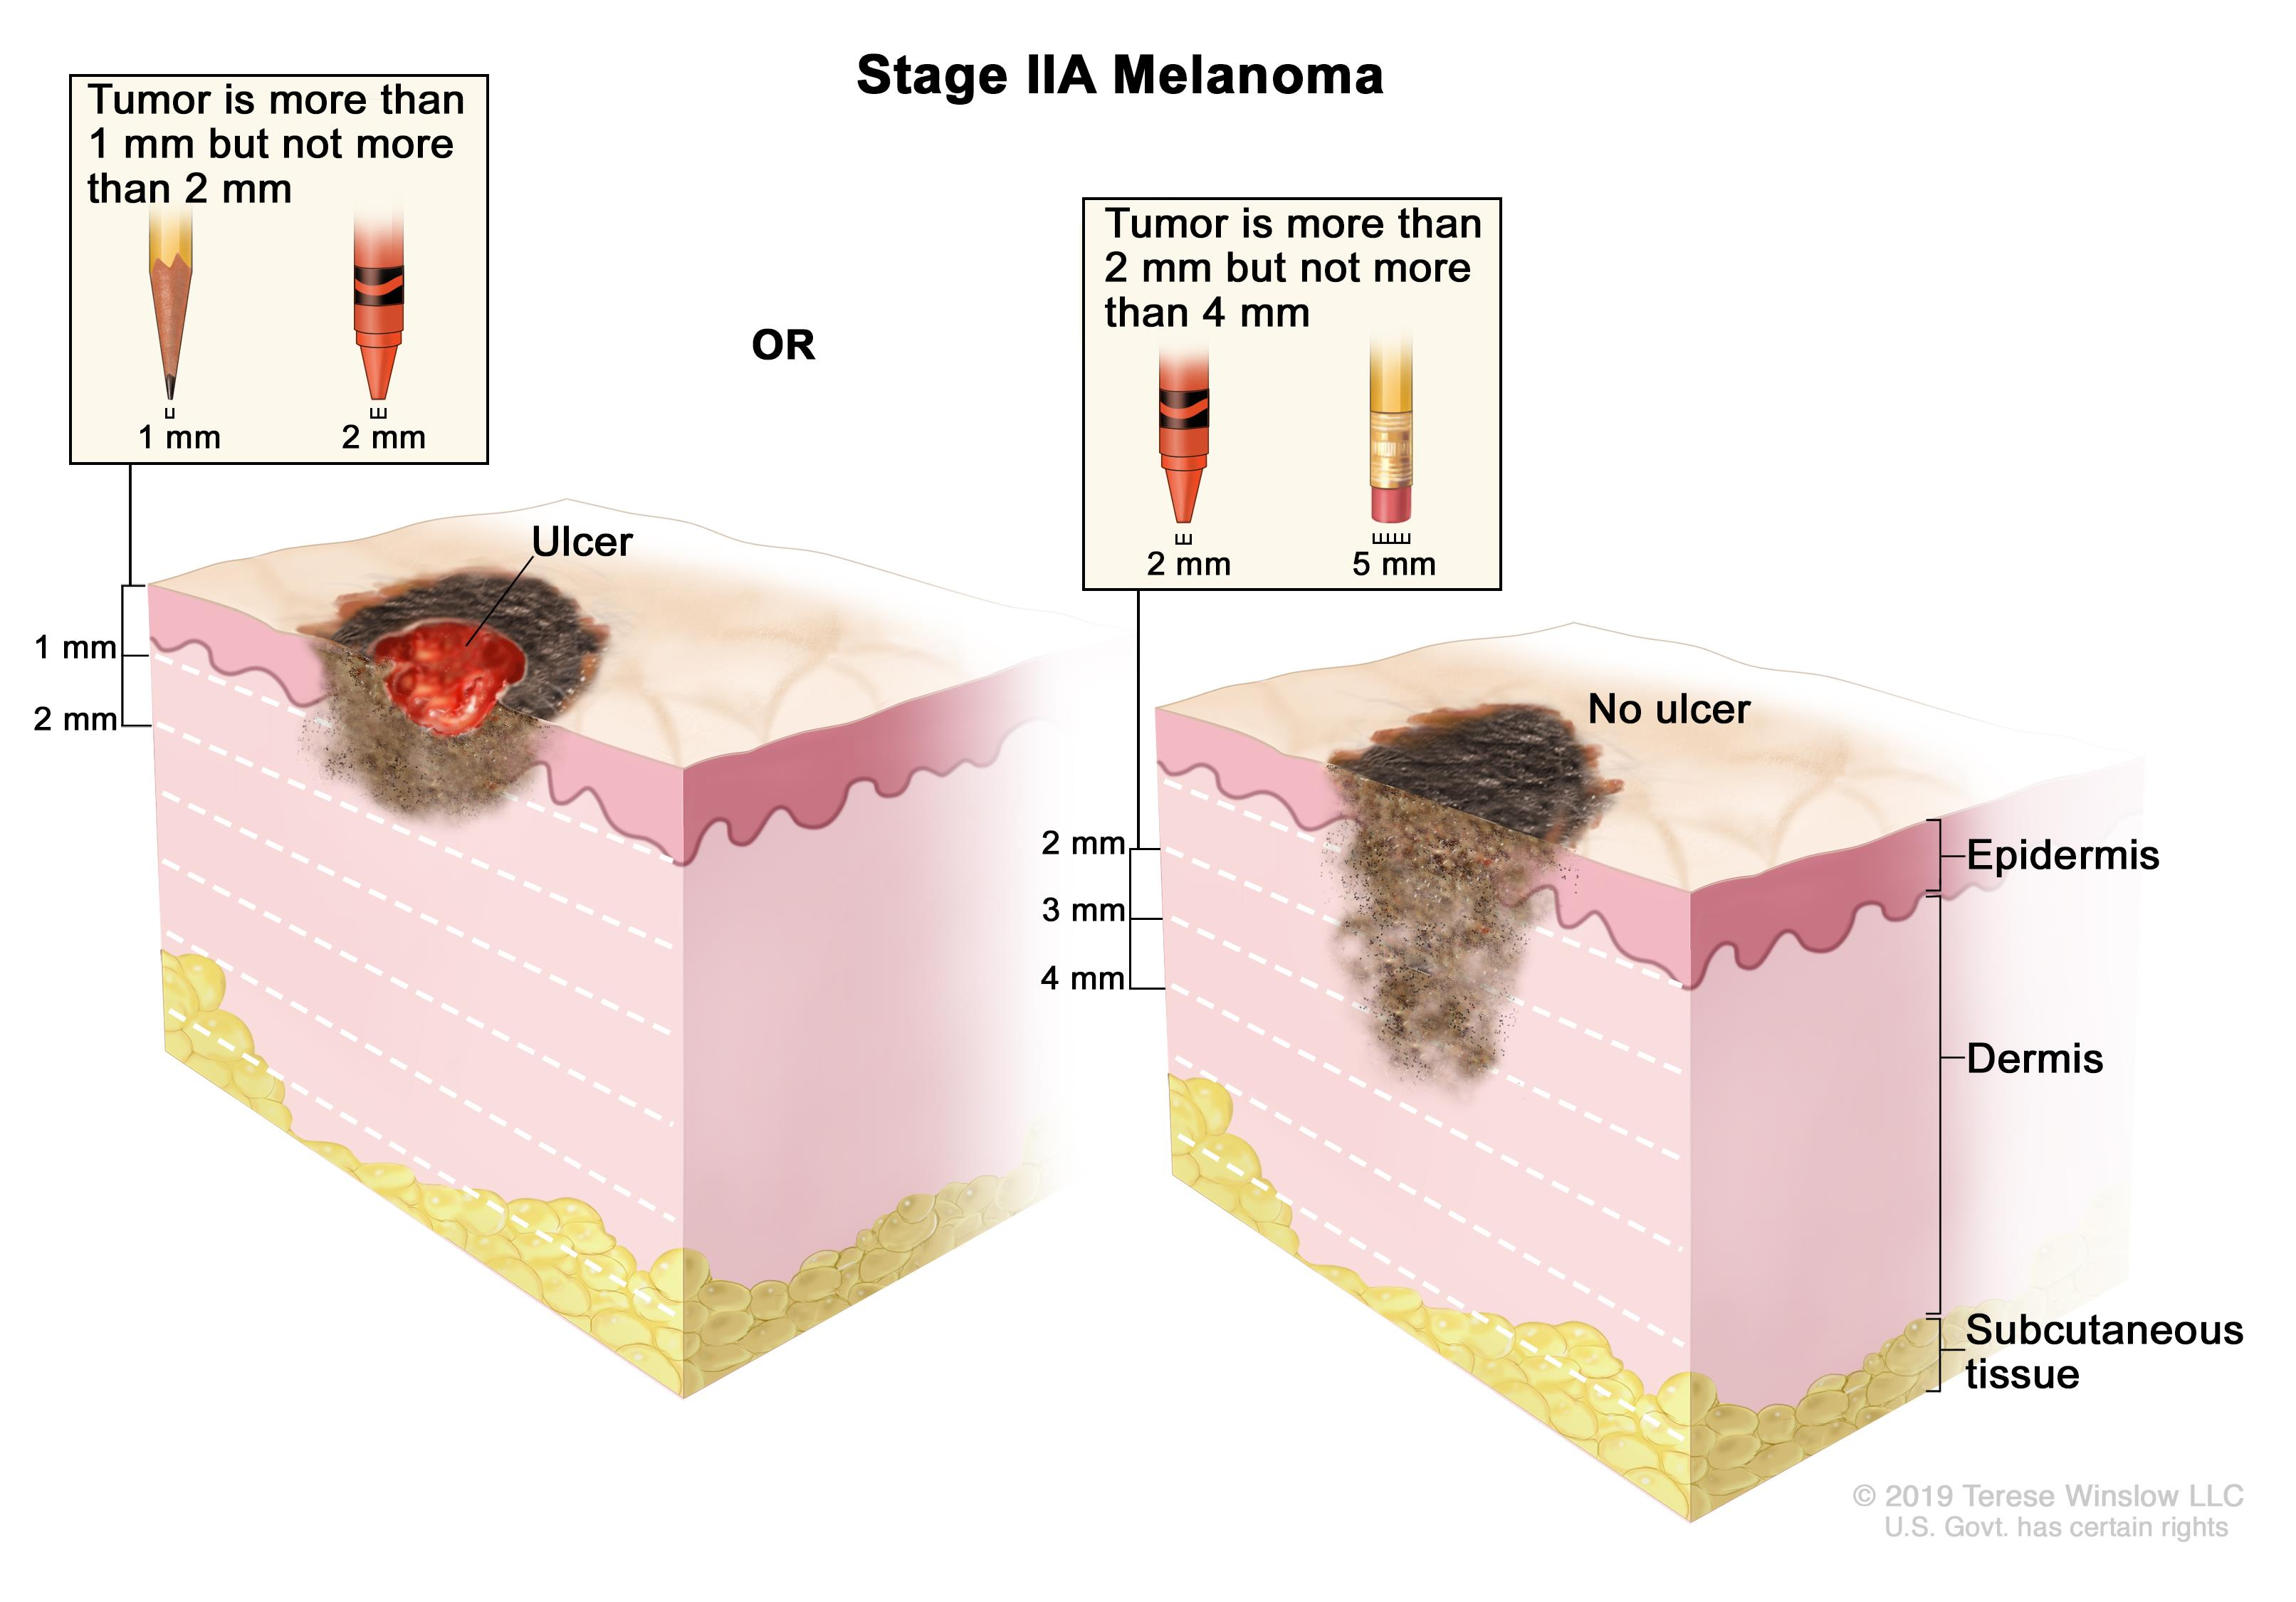 Afbeeldingsresultaat voor pictures of sentinel method for melanoma